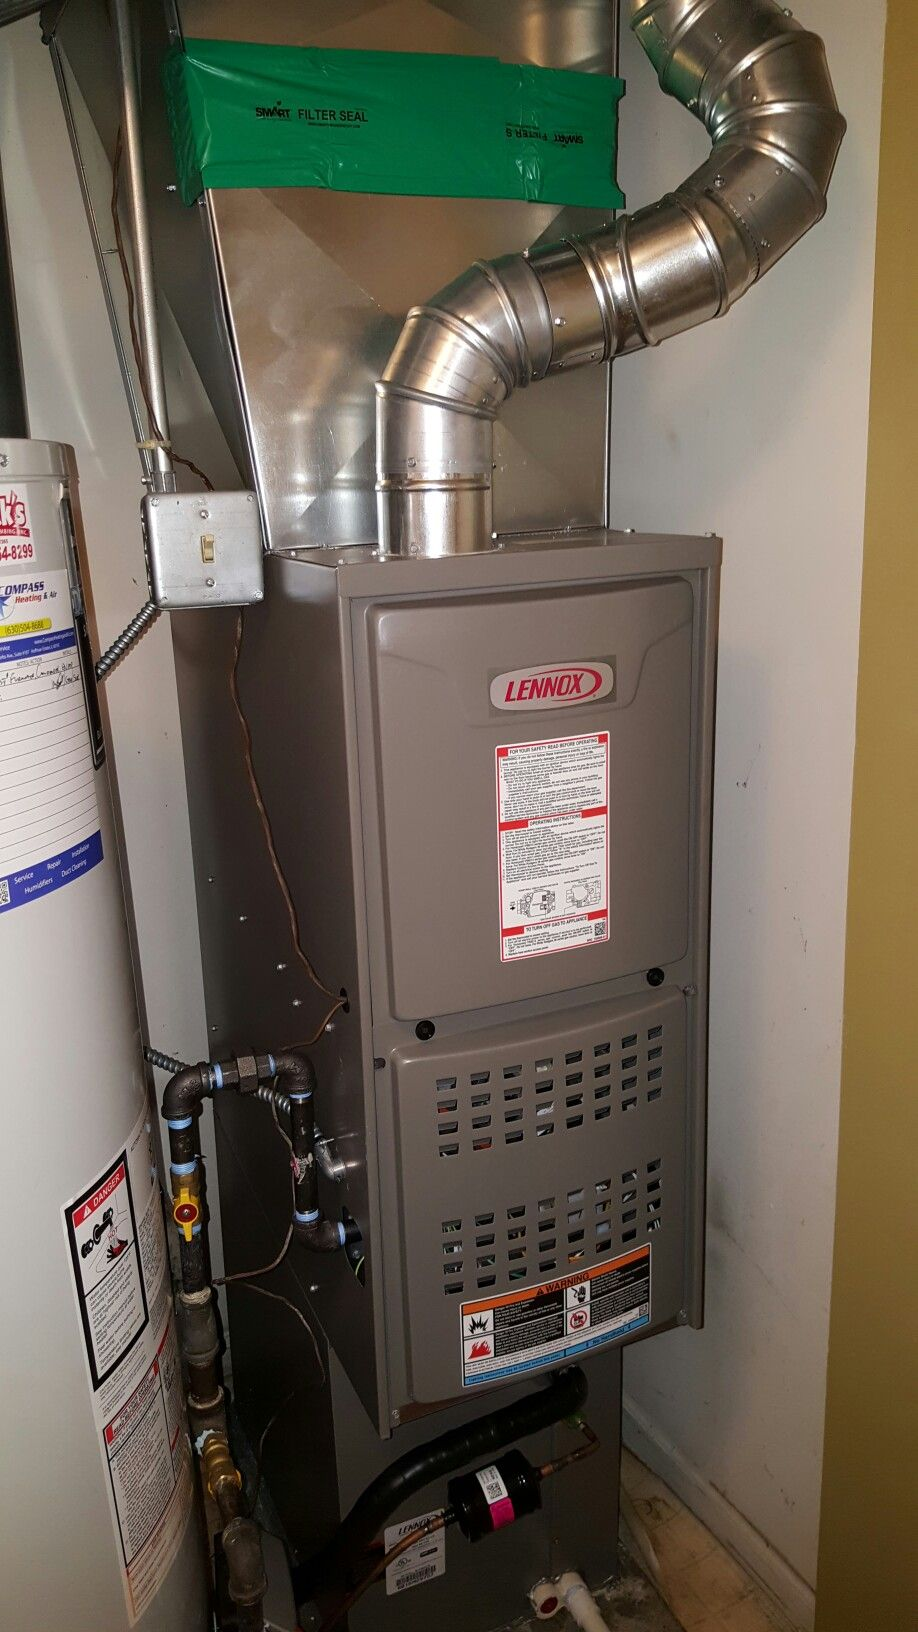 Lennox Ml180 Downflow Natural Gas Furnace Installed By Compass Heating And Air Conditioni Furnace Installation Natural Gas Furnace Heating And Air Conditioning